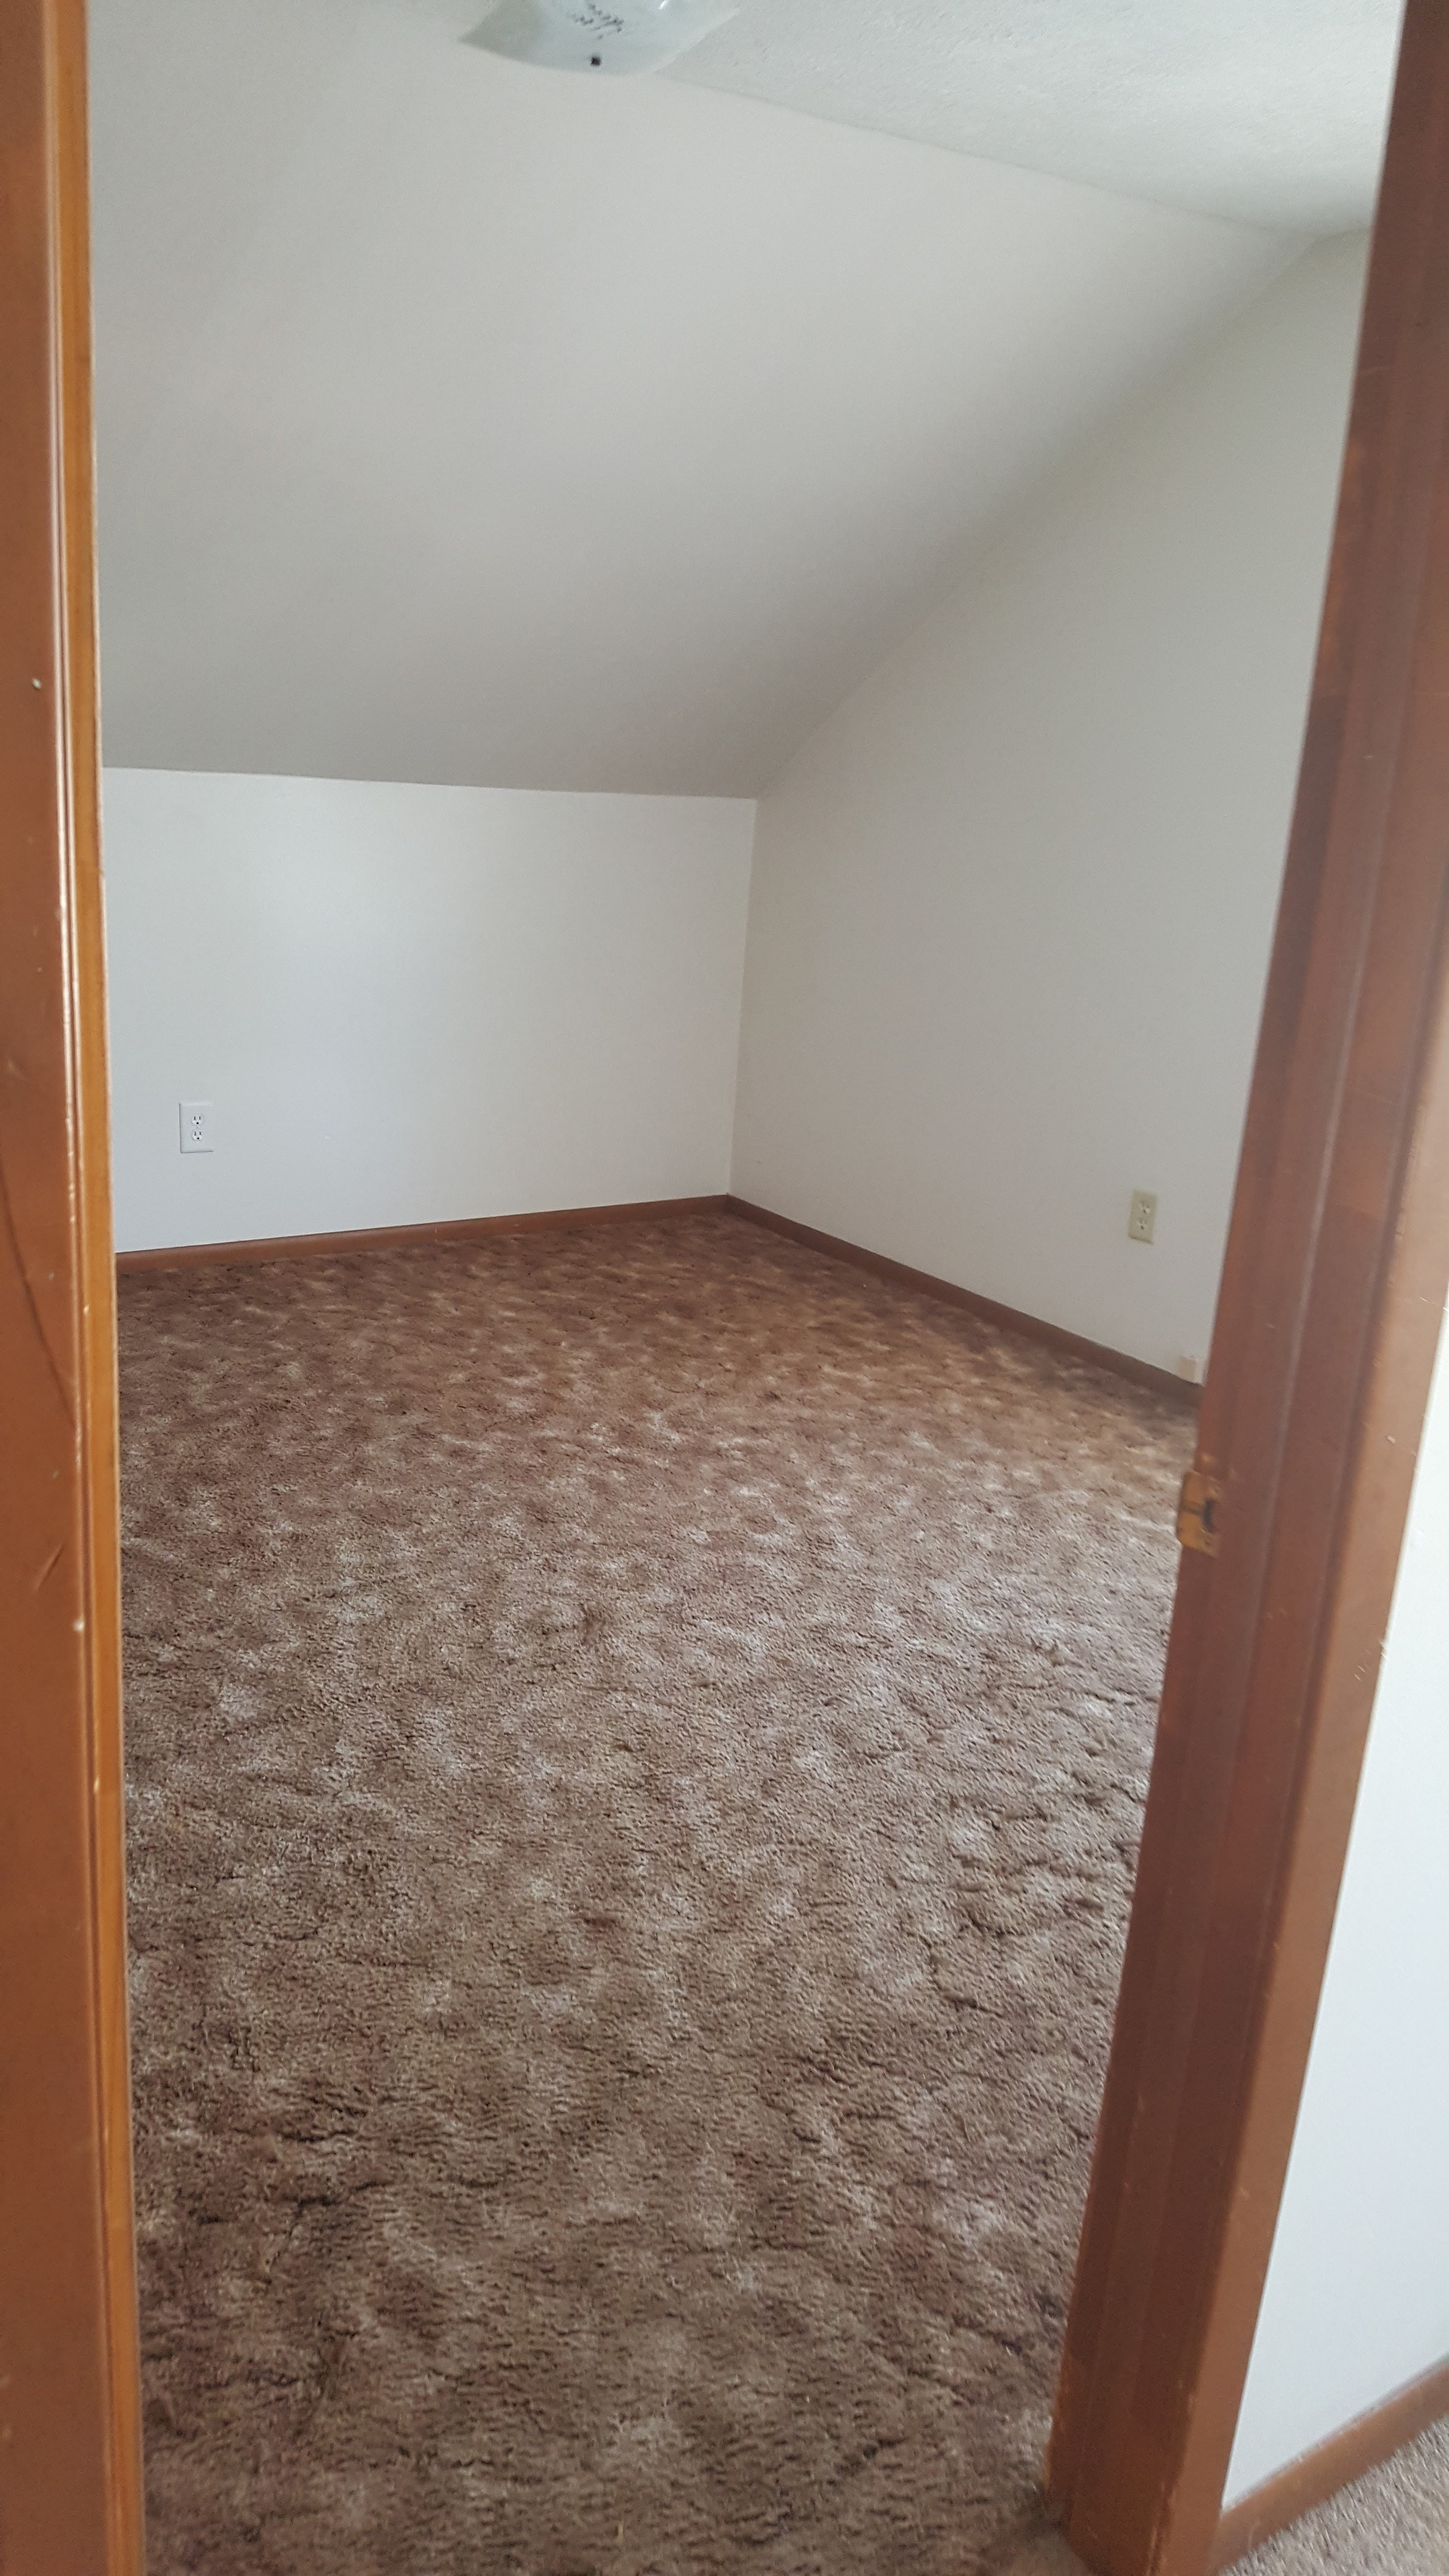 615 new hampshire street three bedroom for rent 695month - Bedroom For Rent